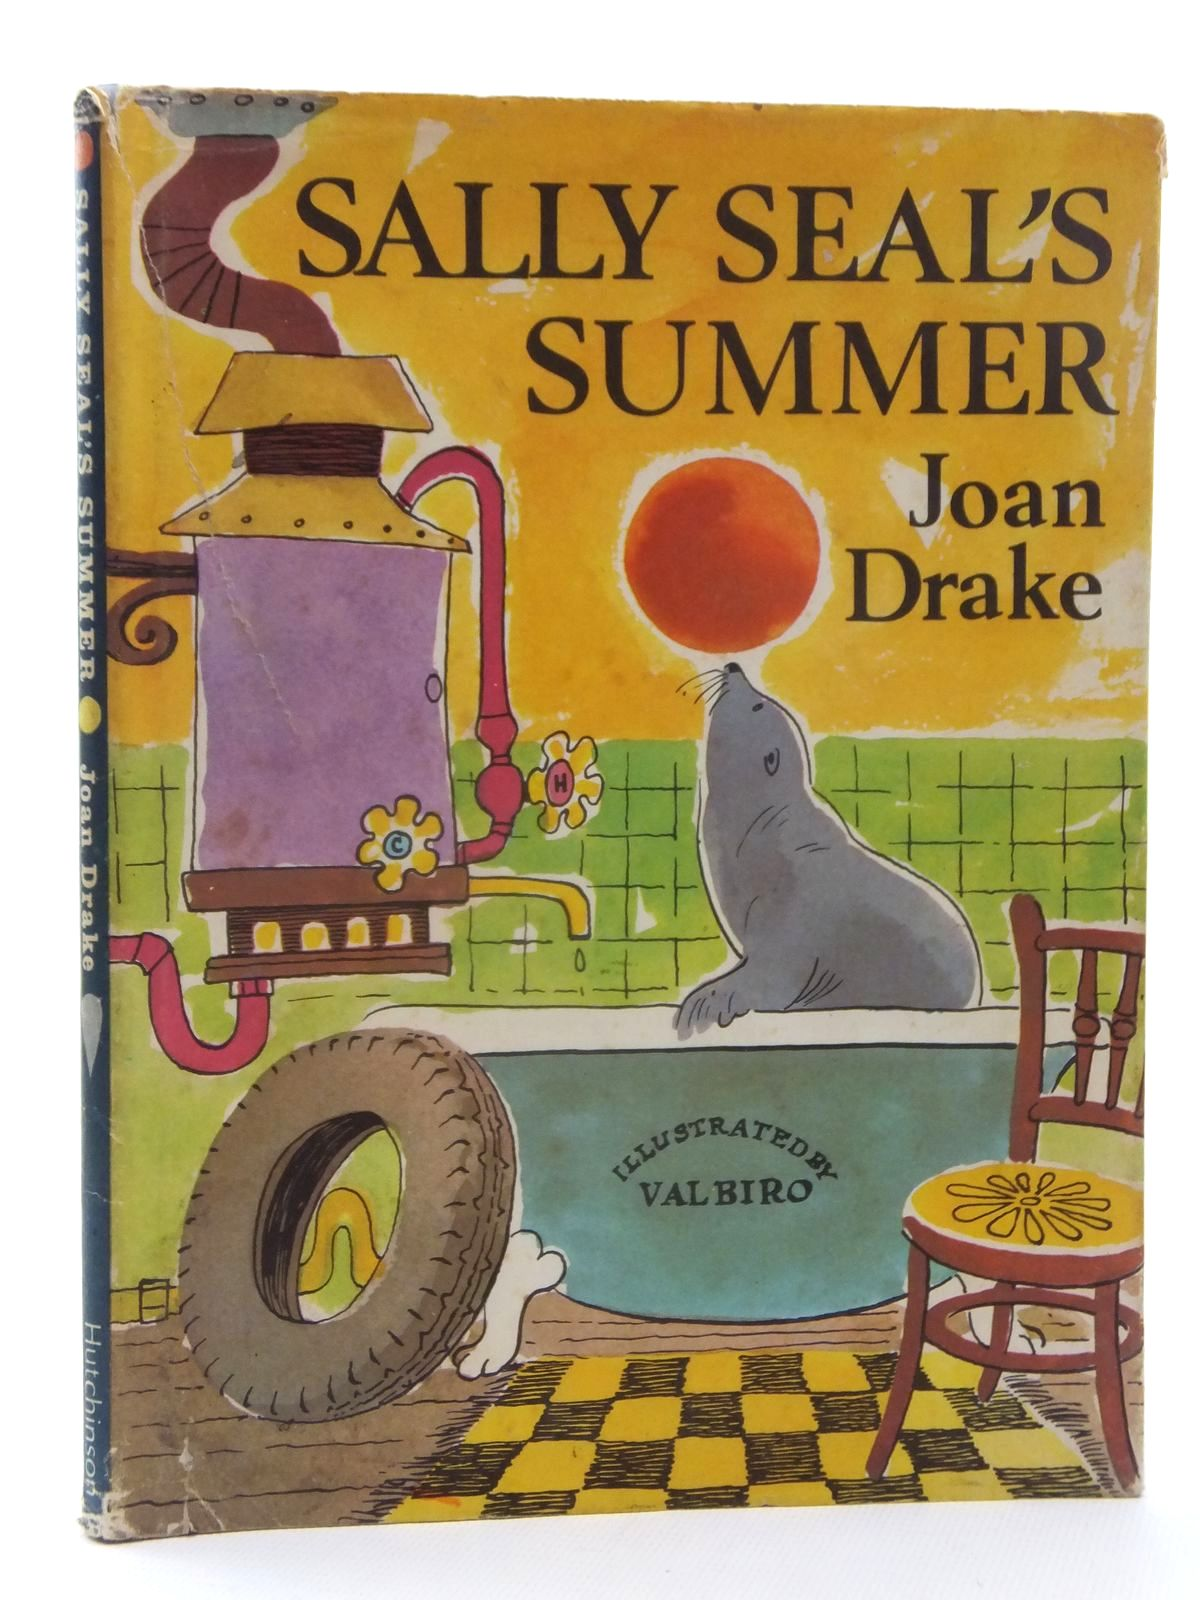 Photo of SALLY SEAL'S SUMMER written by Drake, Joan illustrated by Biro, Val published by Hutchinson Junior Books (STOCK CODE: 2123966)  for sale by Stella & Rose's Books